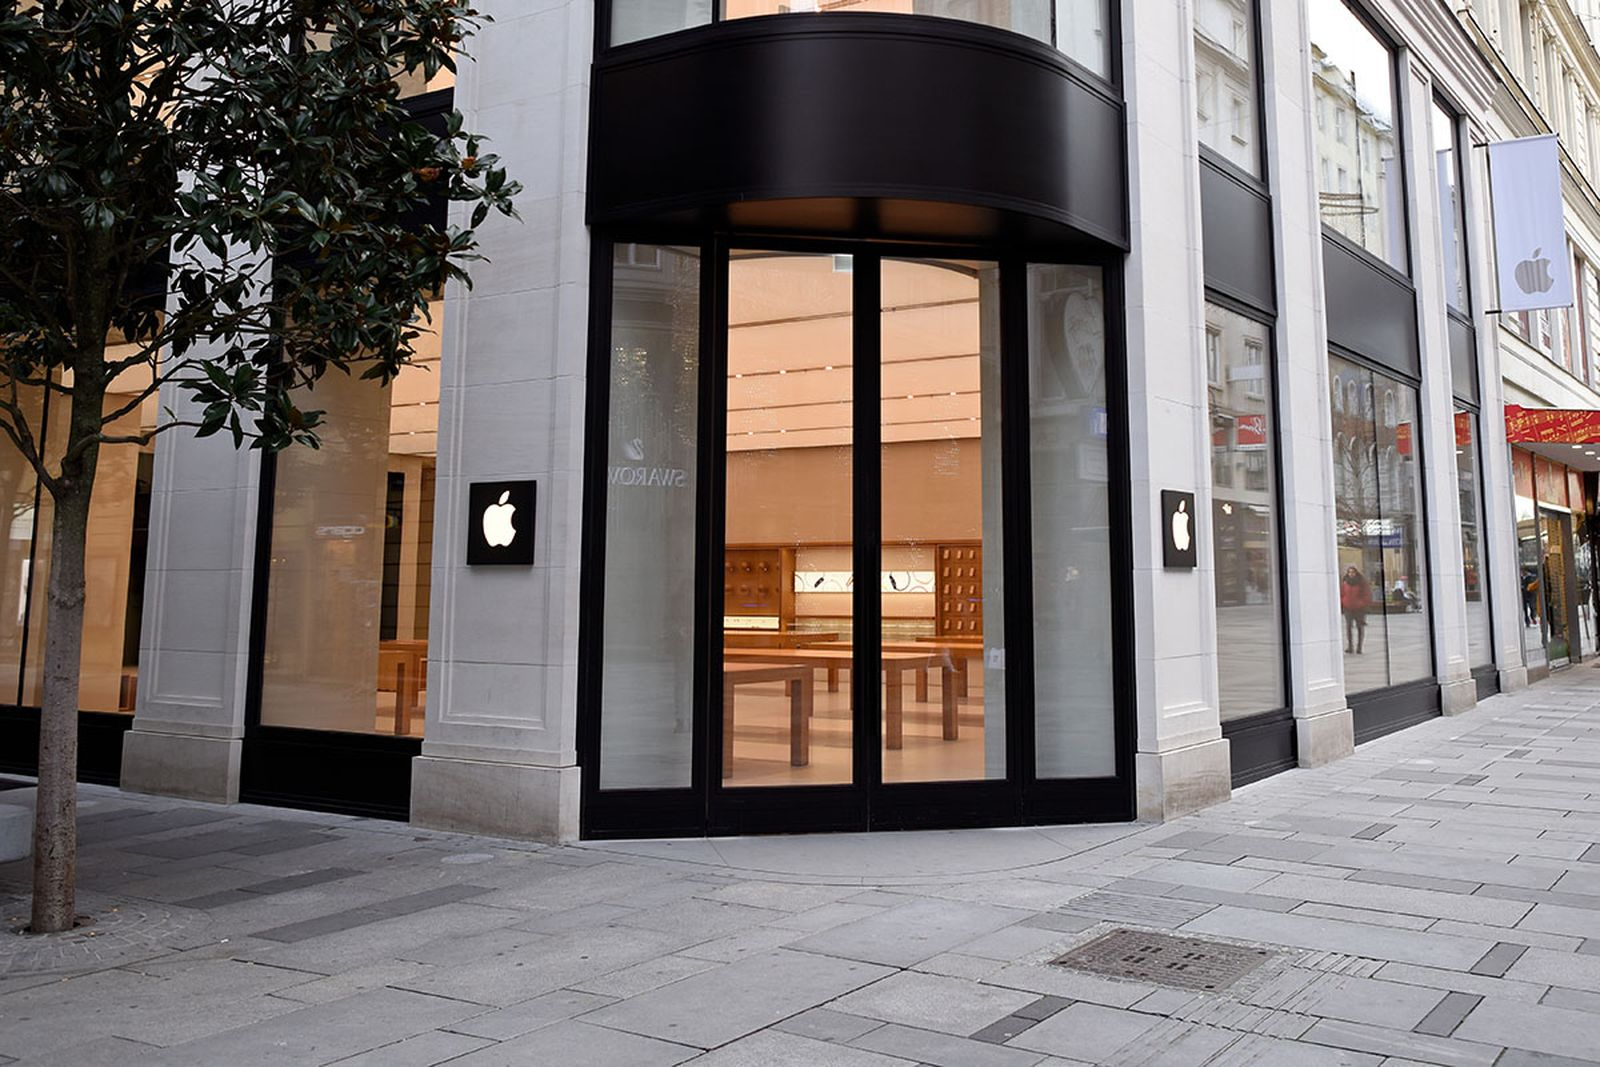 general view of the closed Apple store